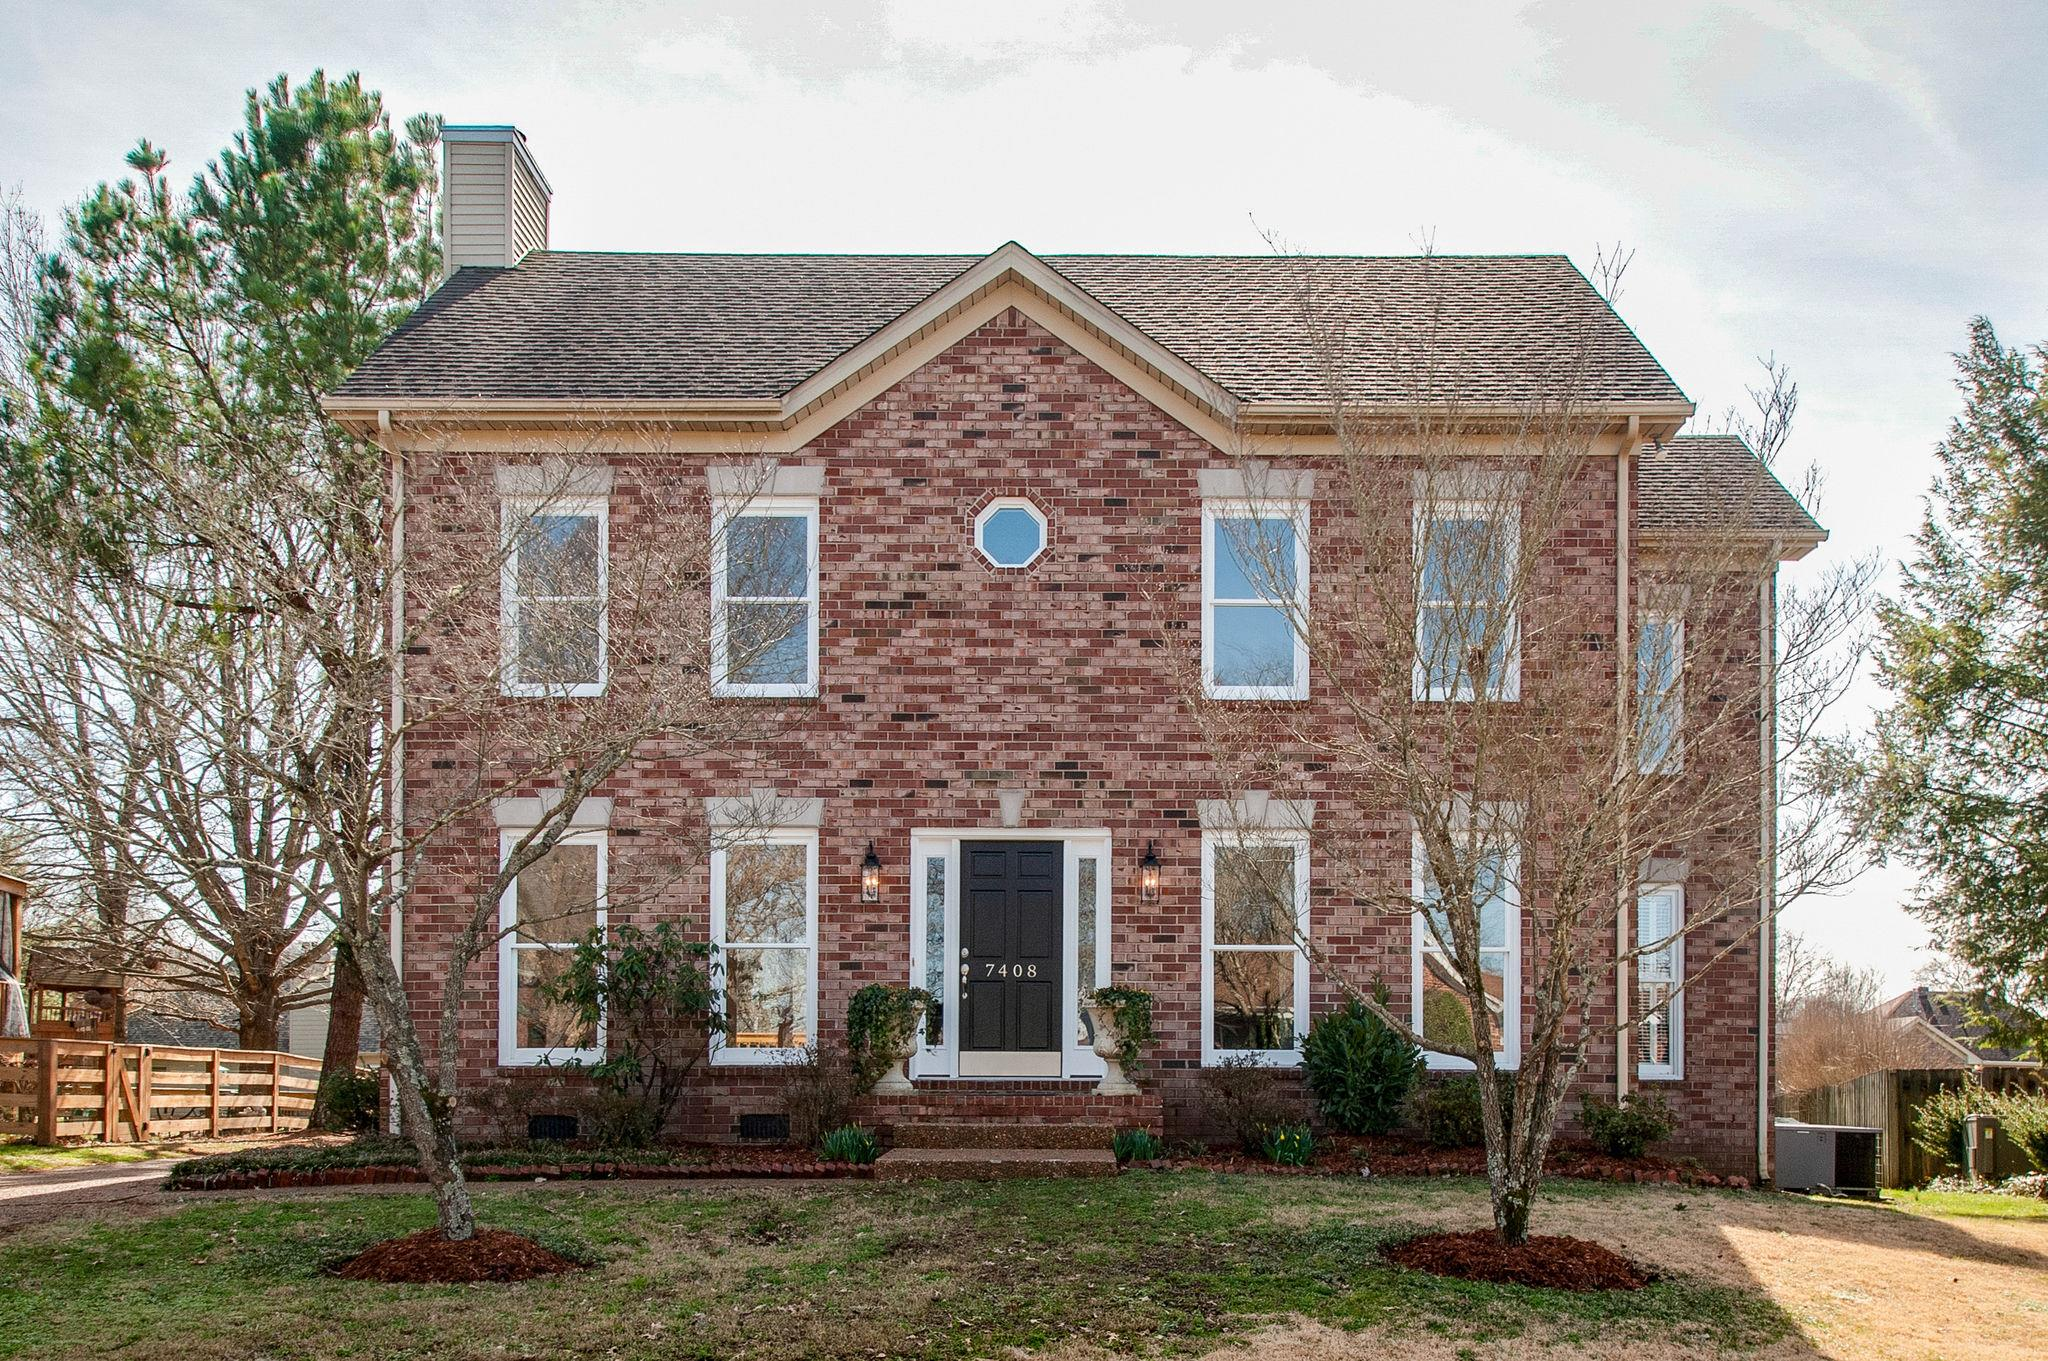 7408 River Bend Cir, Bellevue in Davidson County County, TN 37221 Home for Sale